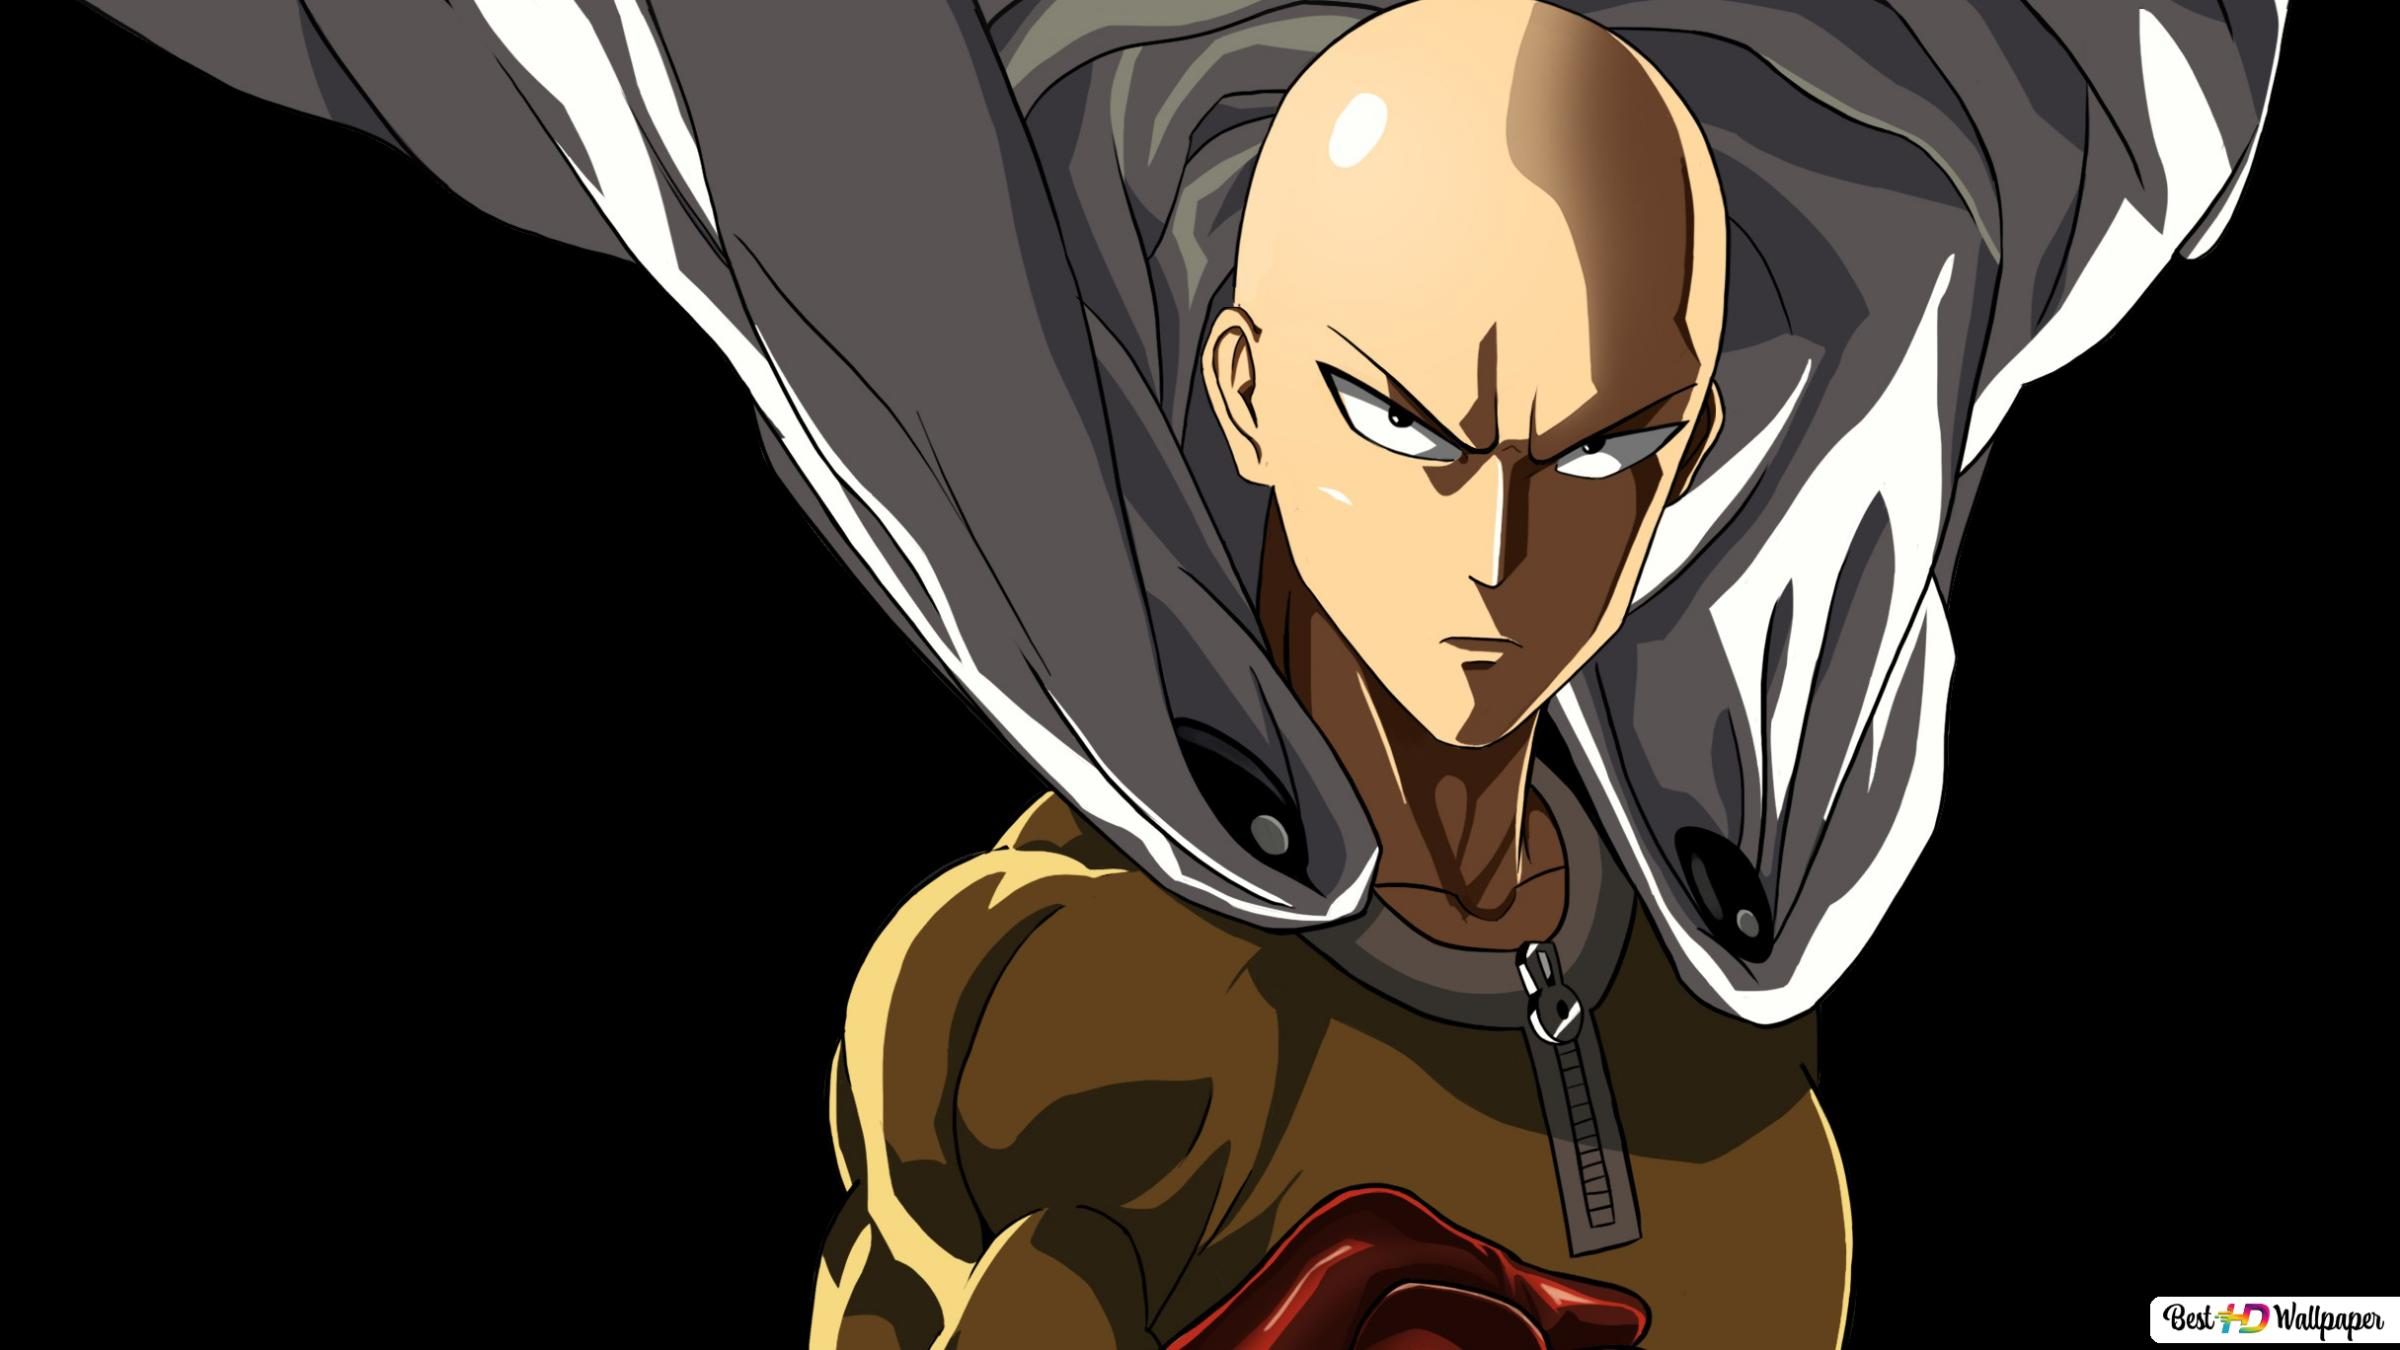 One Punch Man Saitama Punch Caped Baldy Hd Wallpaper Download